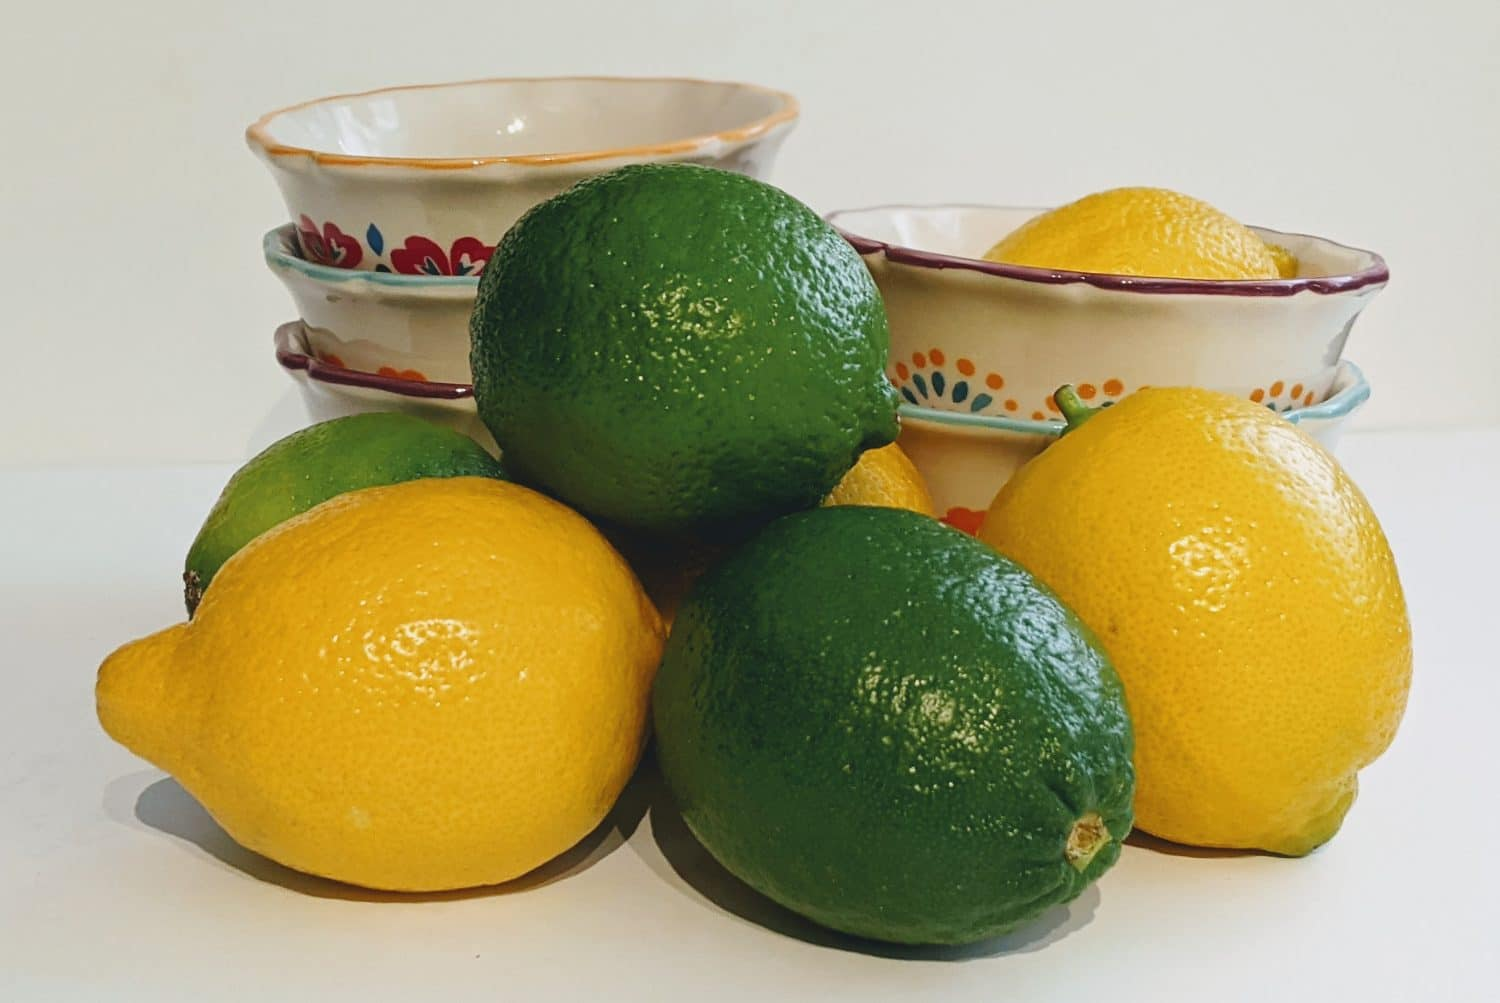 lemons and limes in a dish